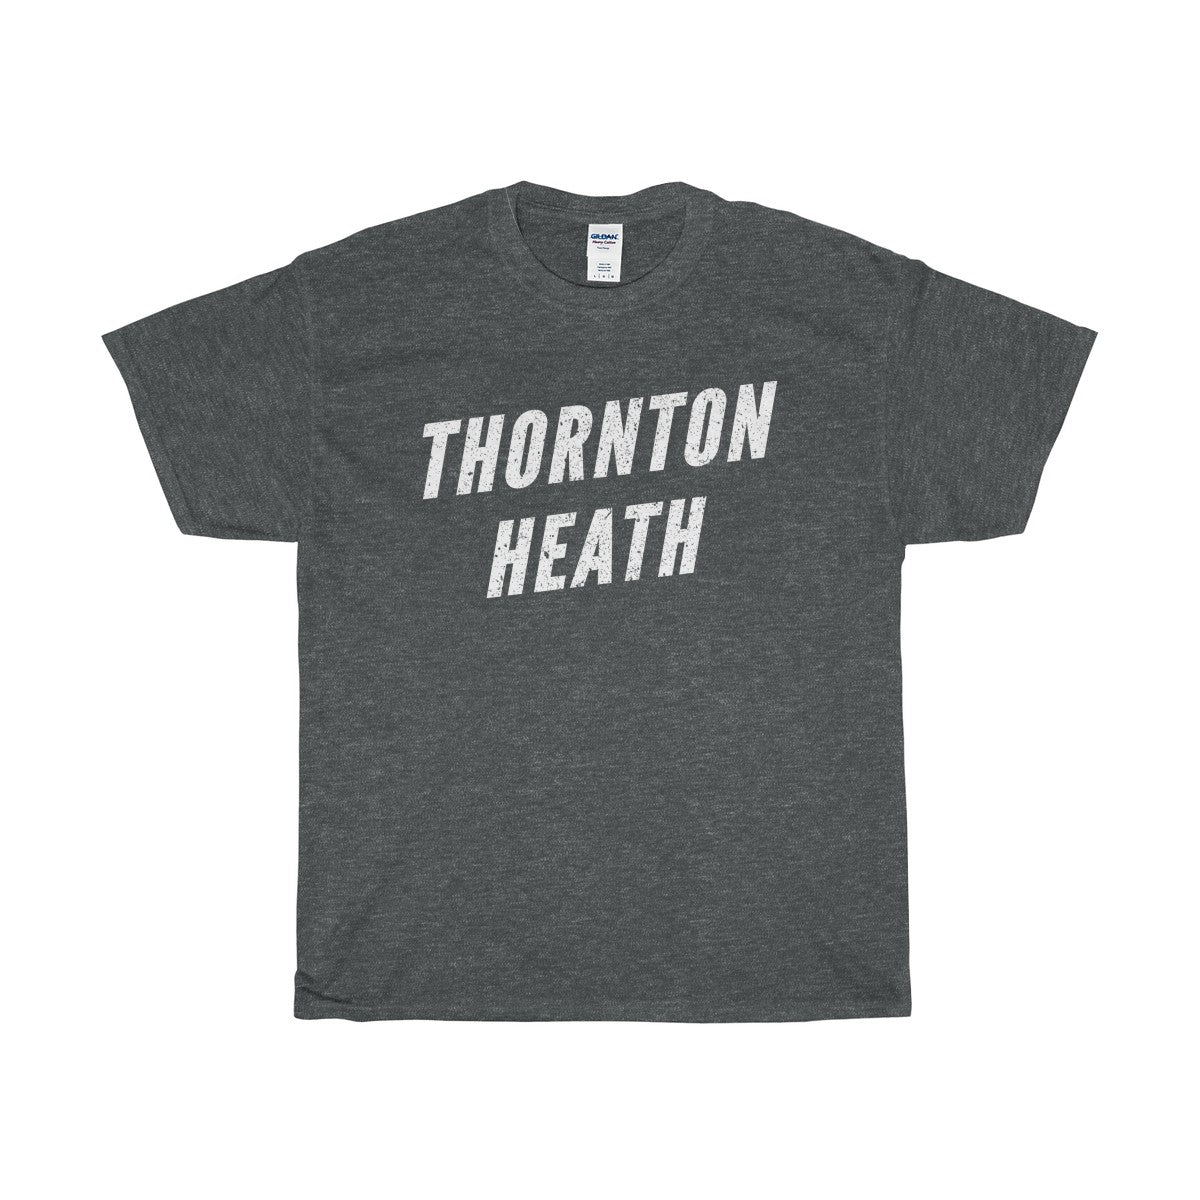 Thornton Heath T-Shirt